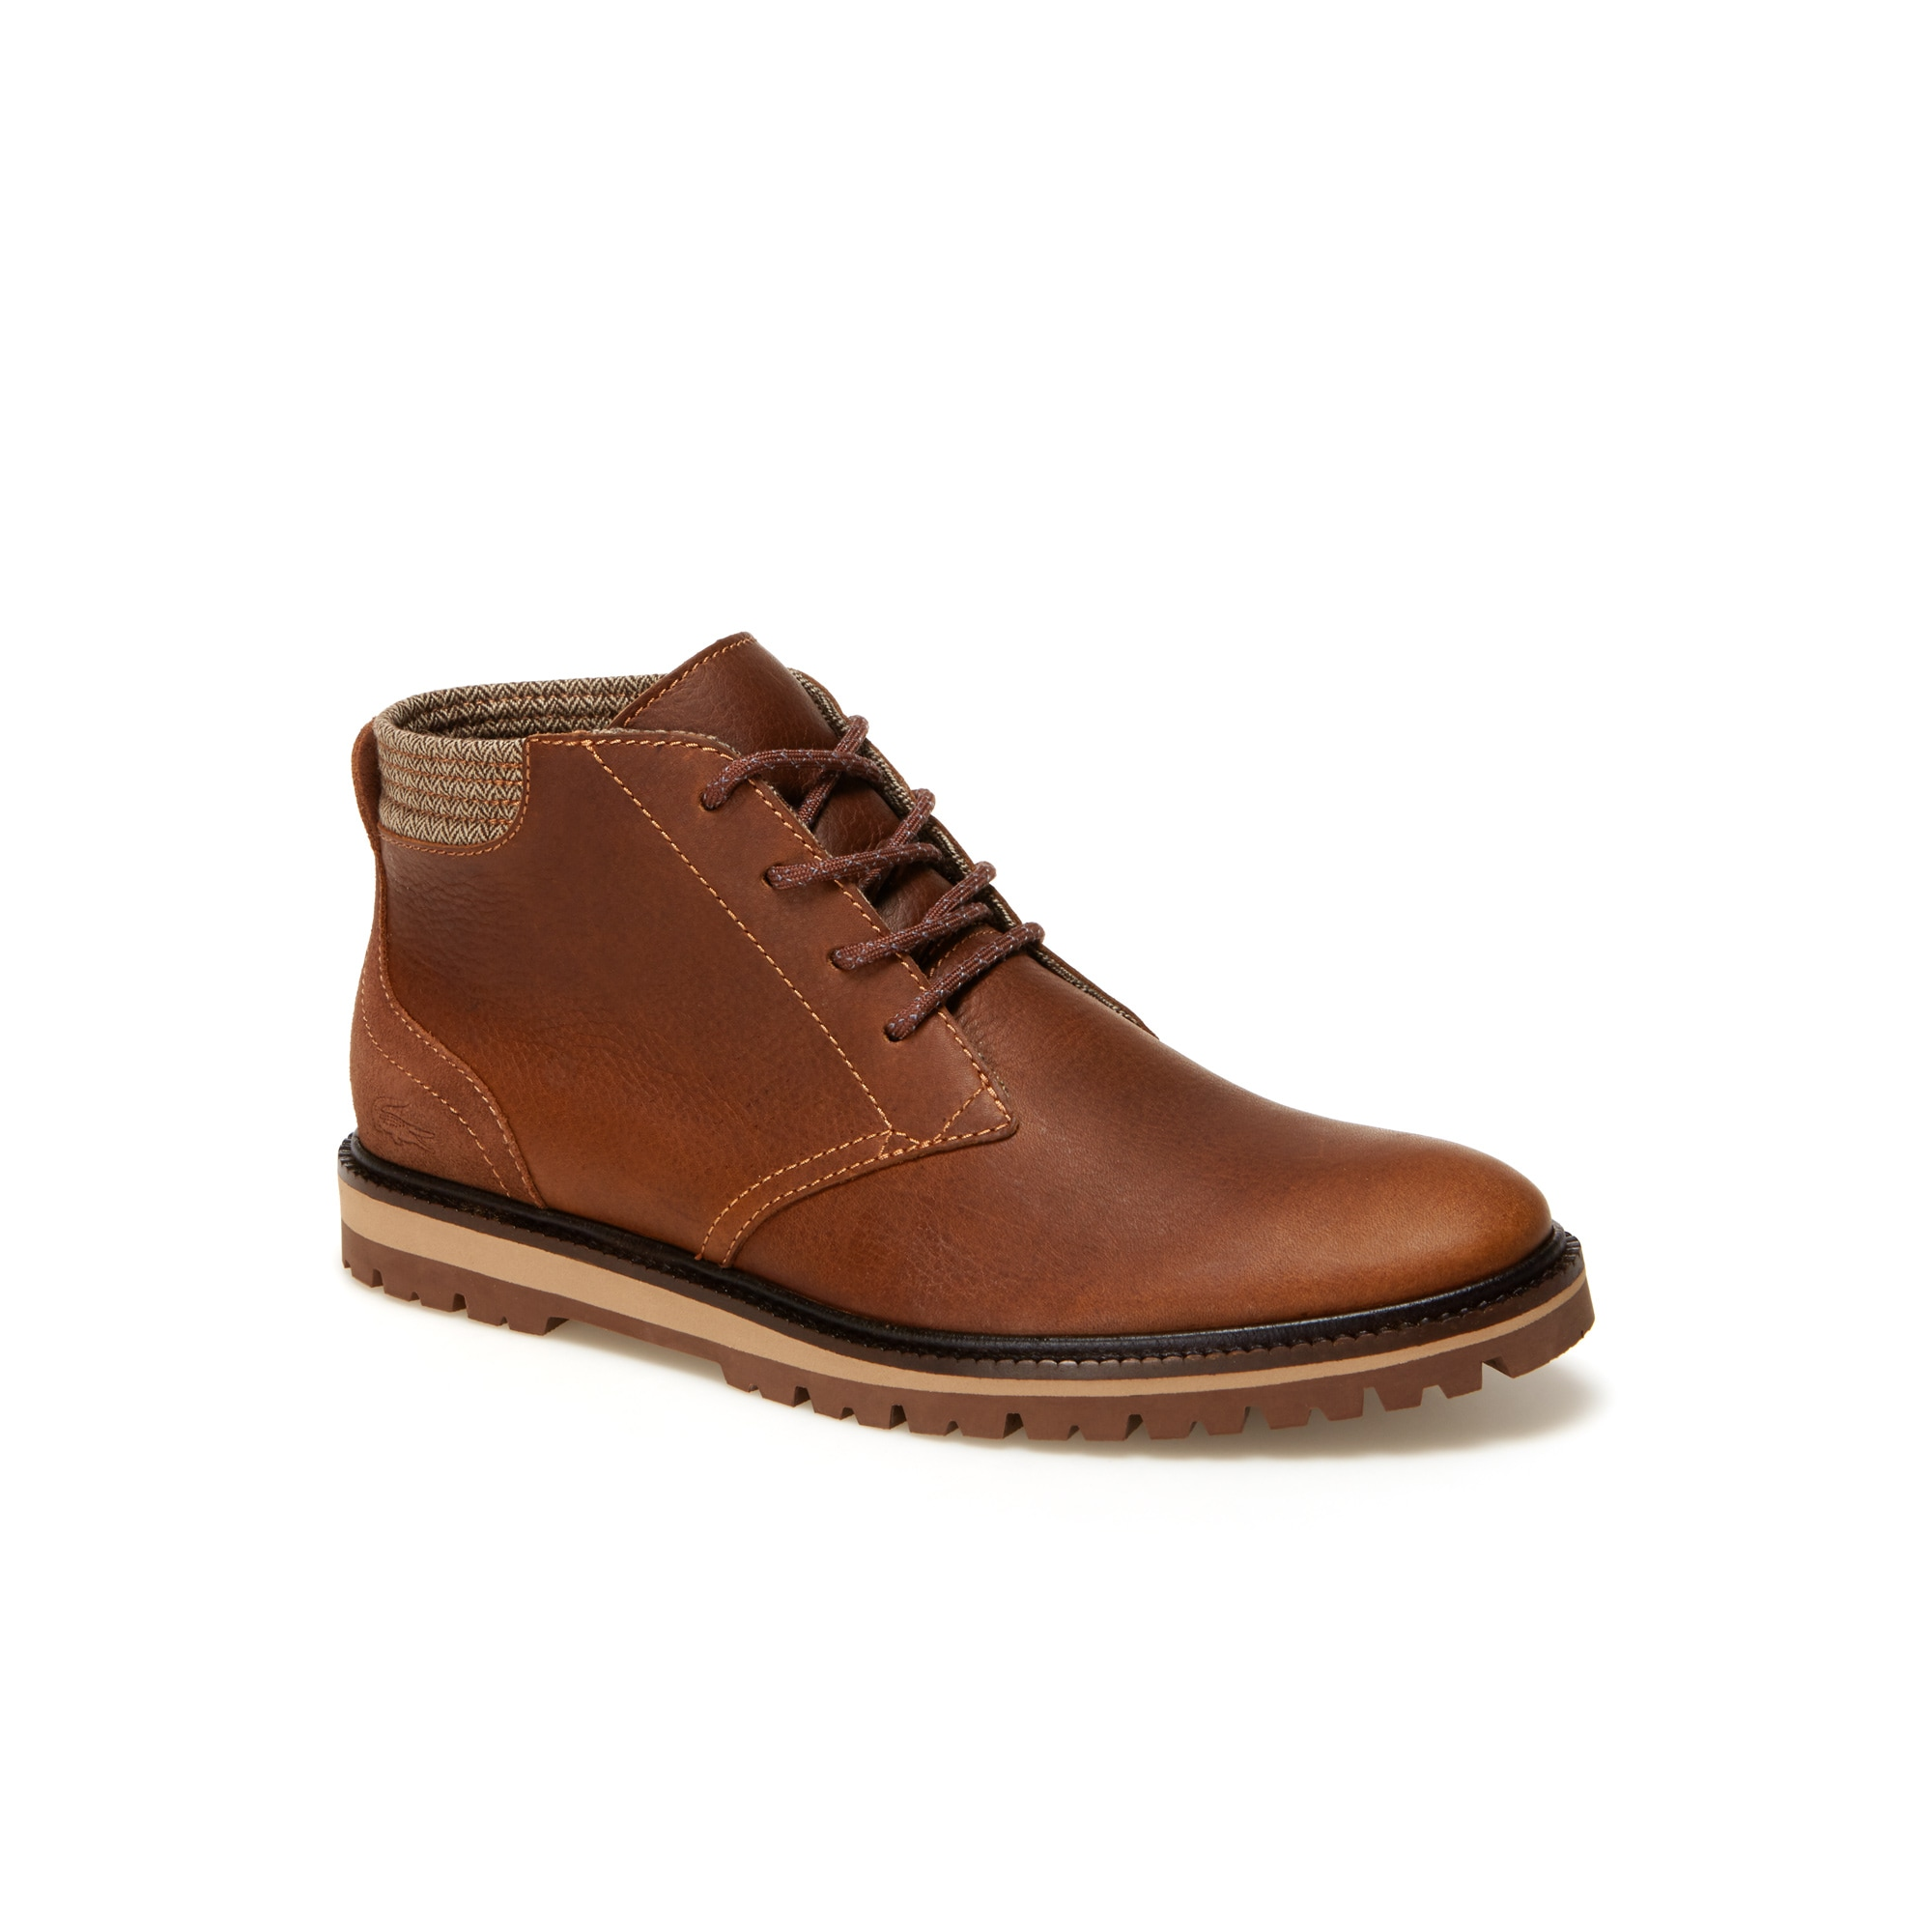 Men's Montbard Chukka Leather Boots